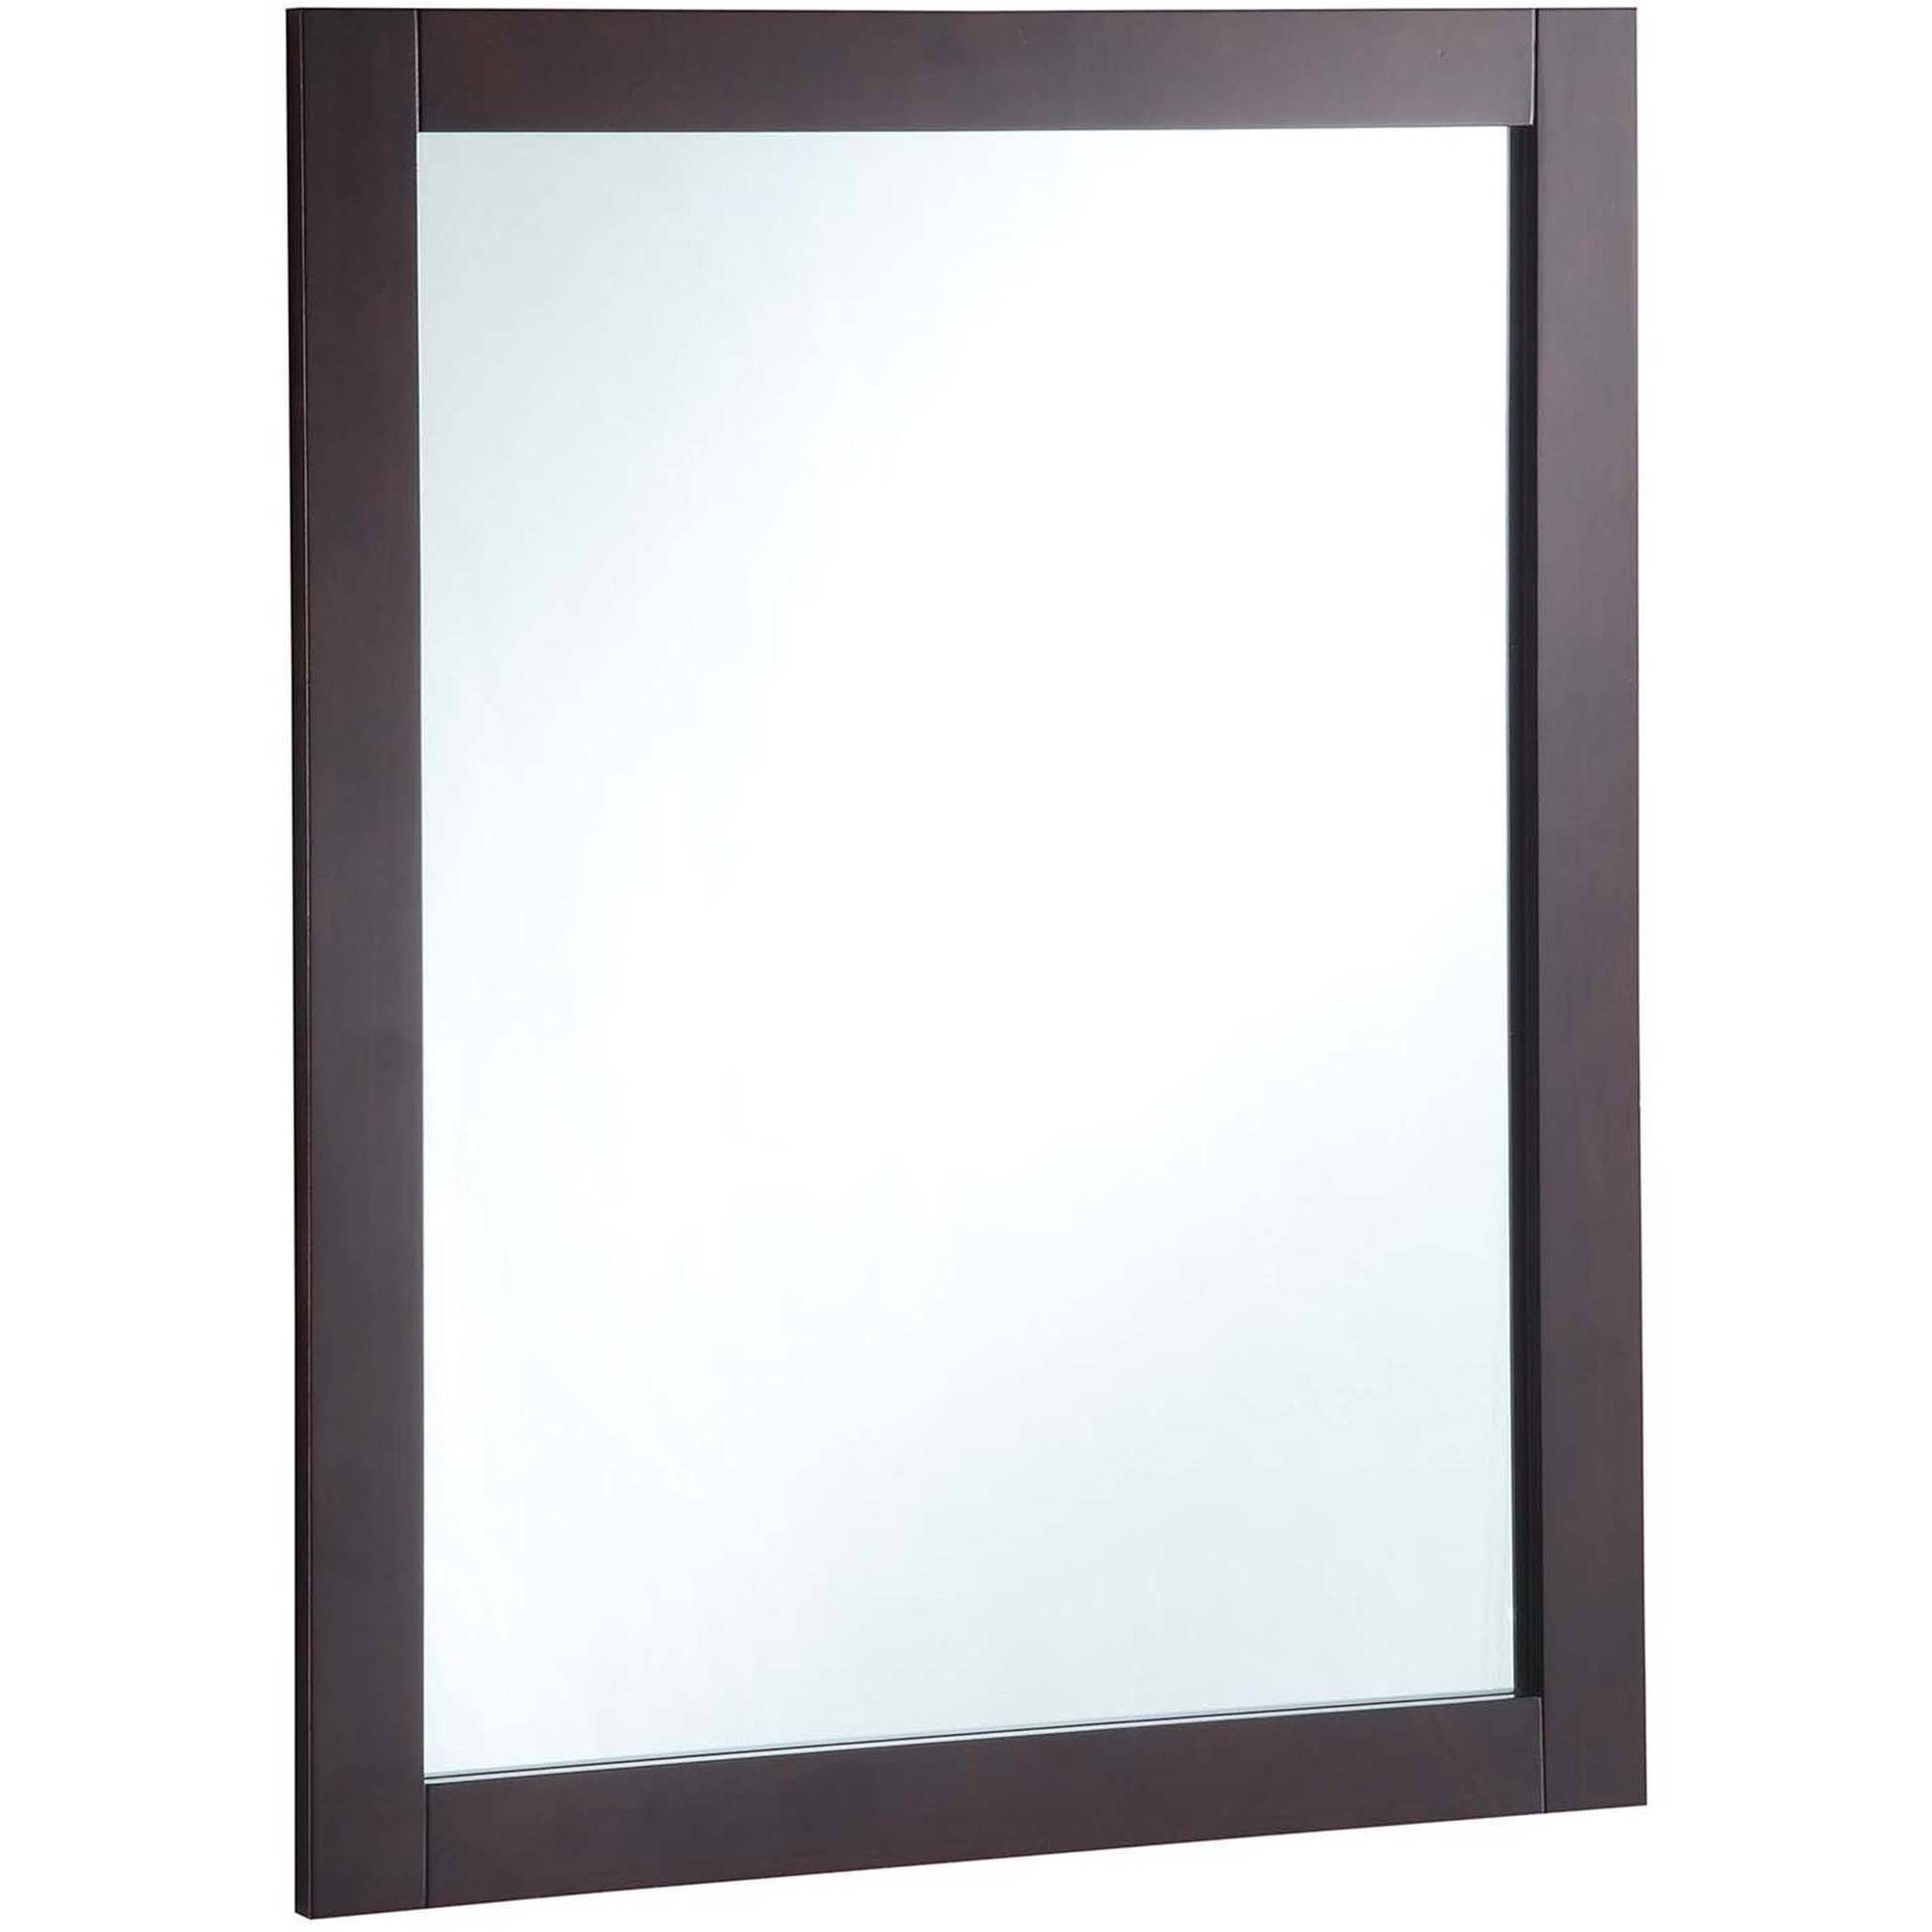 "Design House 547083 24"" x 30"" Vanity Mirror, Espresso by Design House"